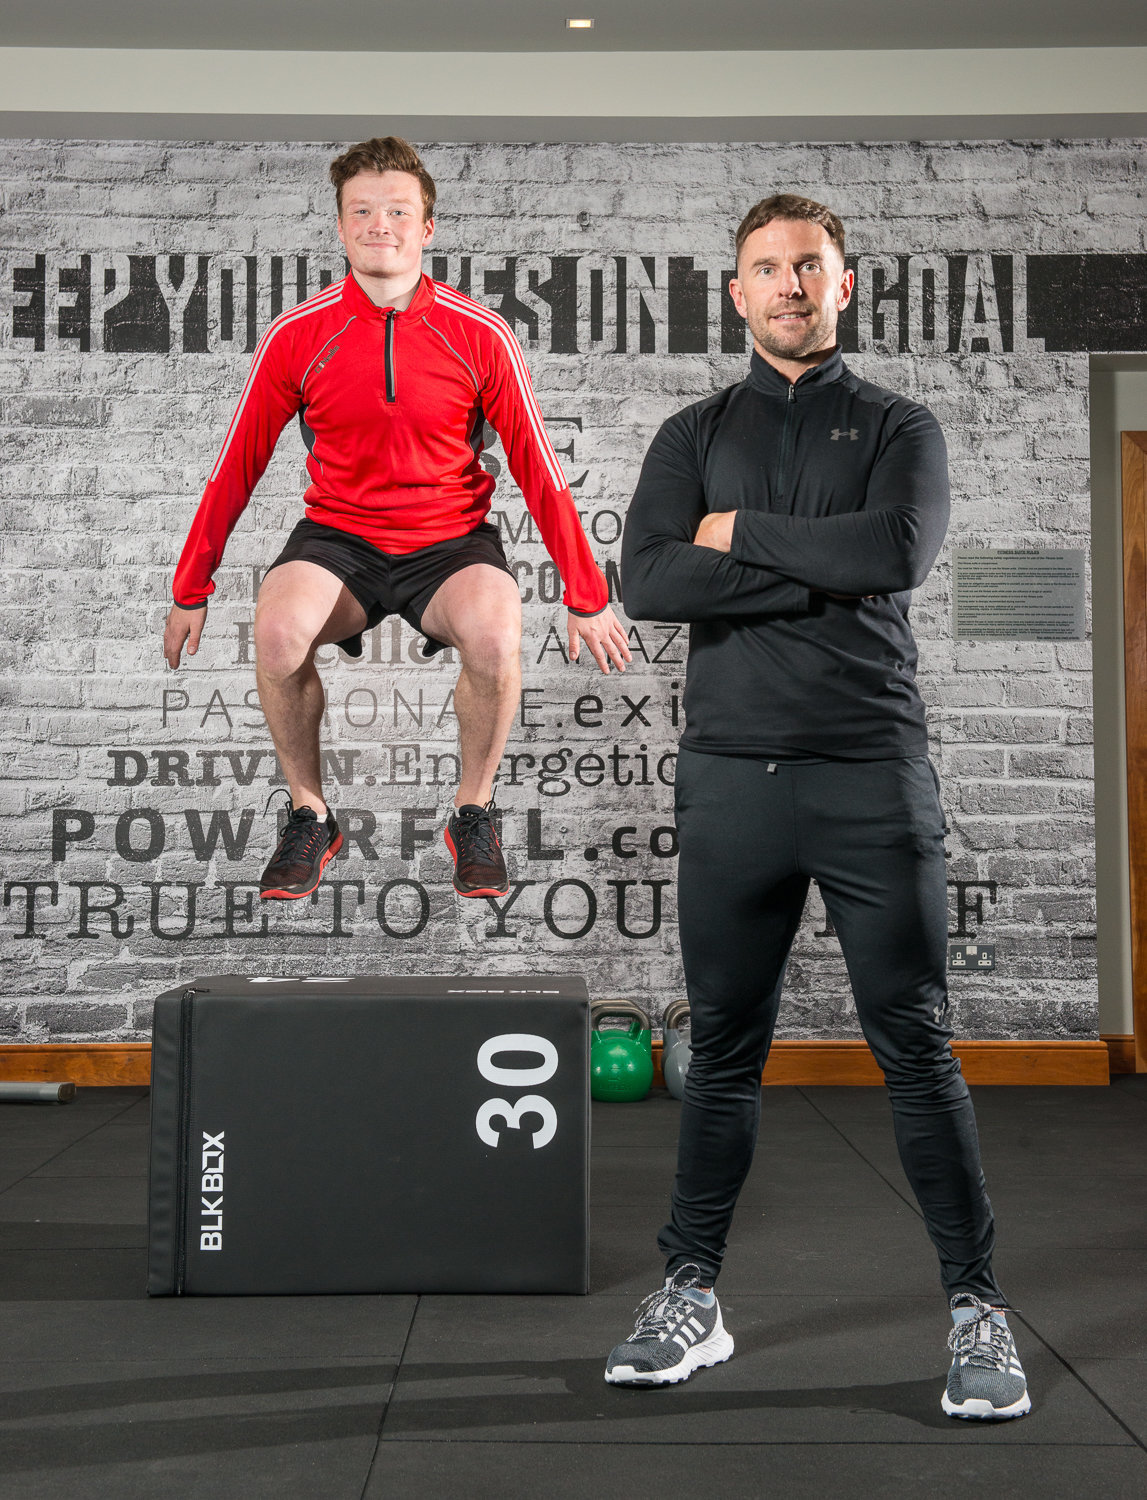 photo in gym with client jumping and fitness instructor